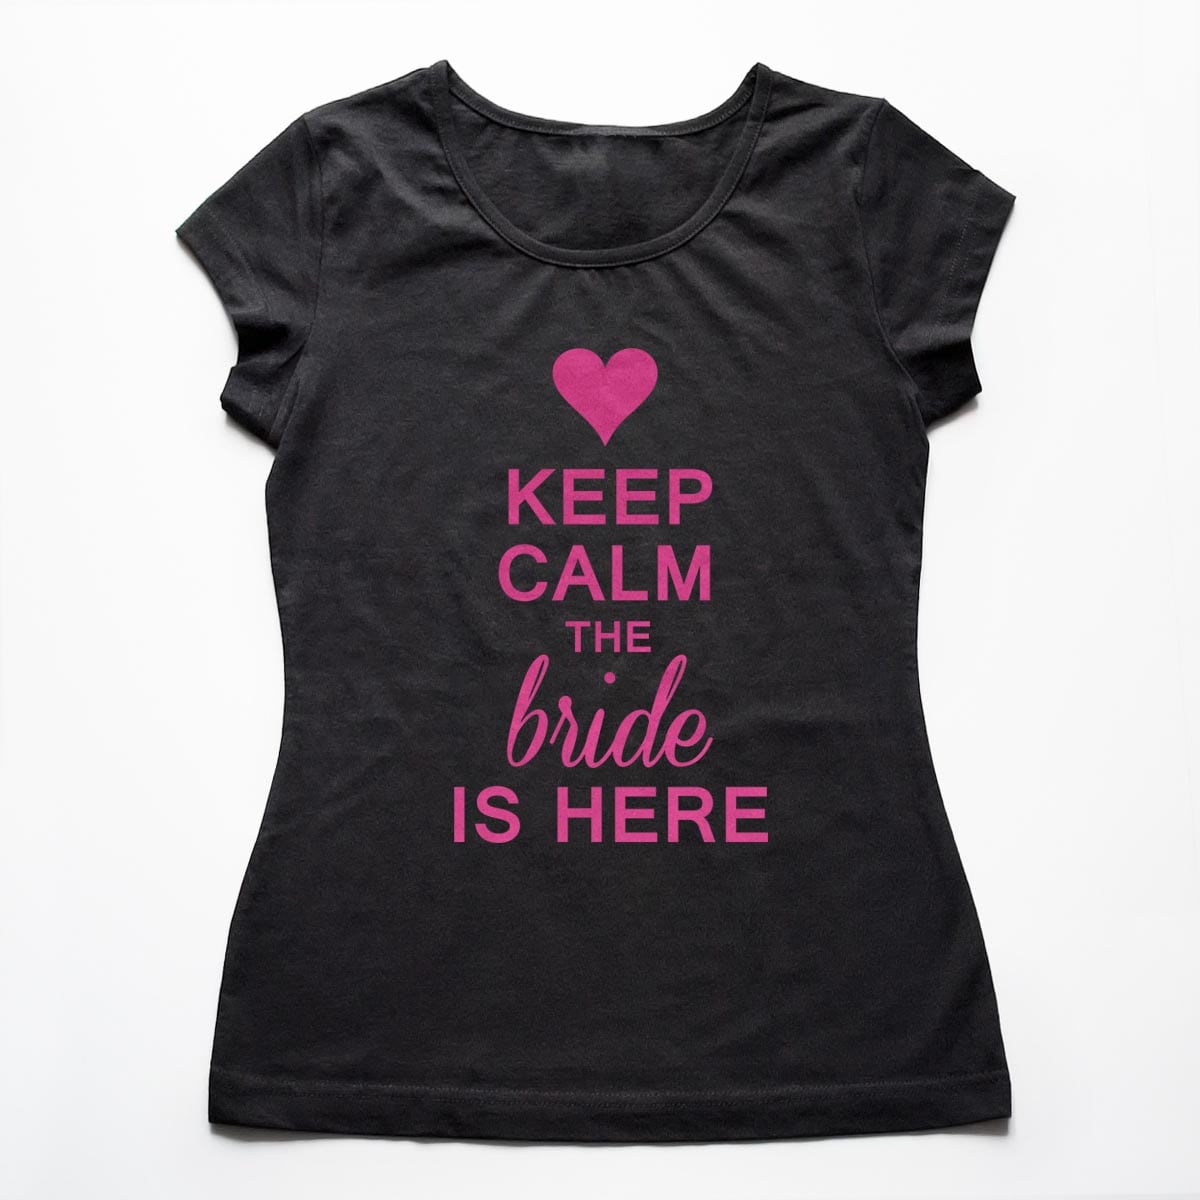 Tricouri petrecerea burlacitelor Keep calm - The Bride is here 5